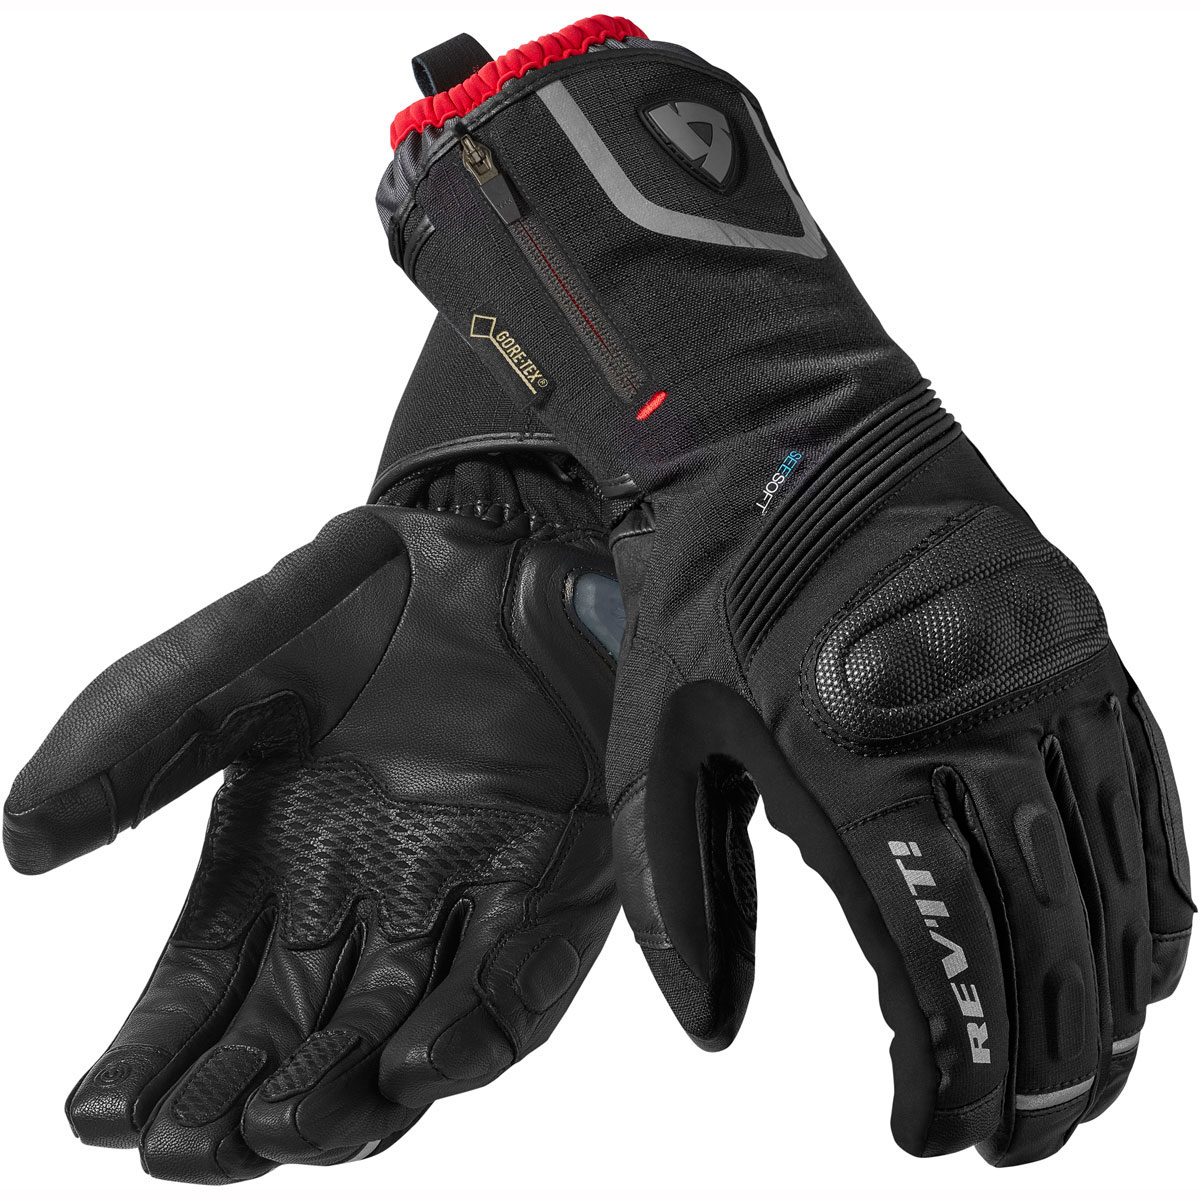 The Rev'it! Taurus Gore-Tex Gloves